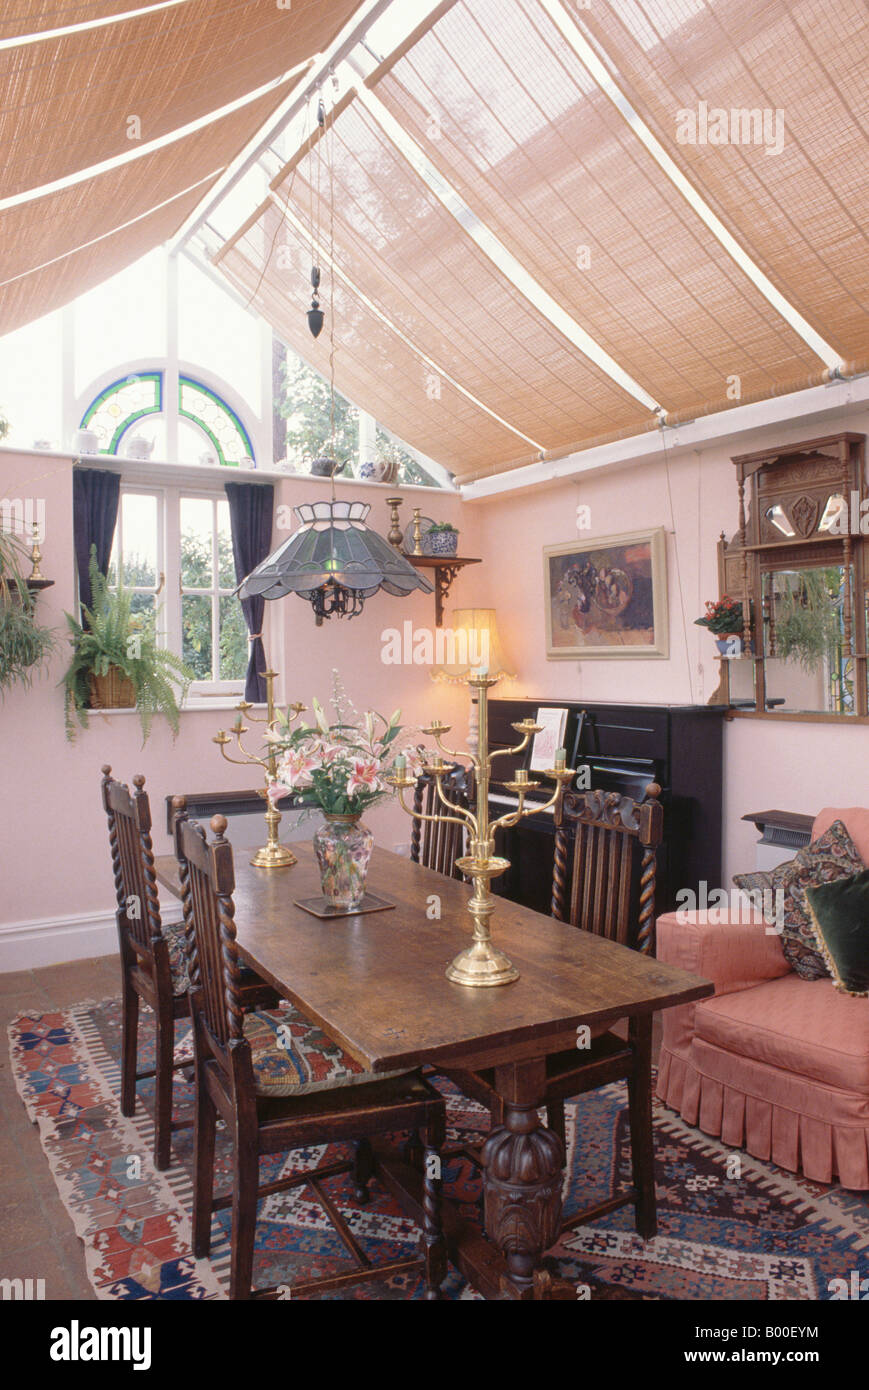 Split Cane Blinds In Conservatory Extension Dining Room With Oak Table And Chairs